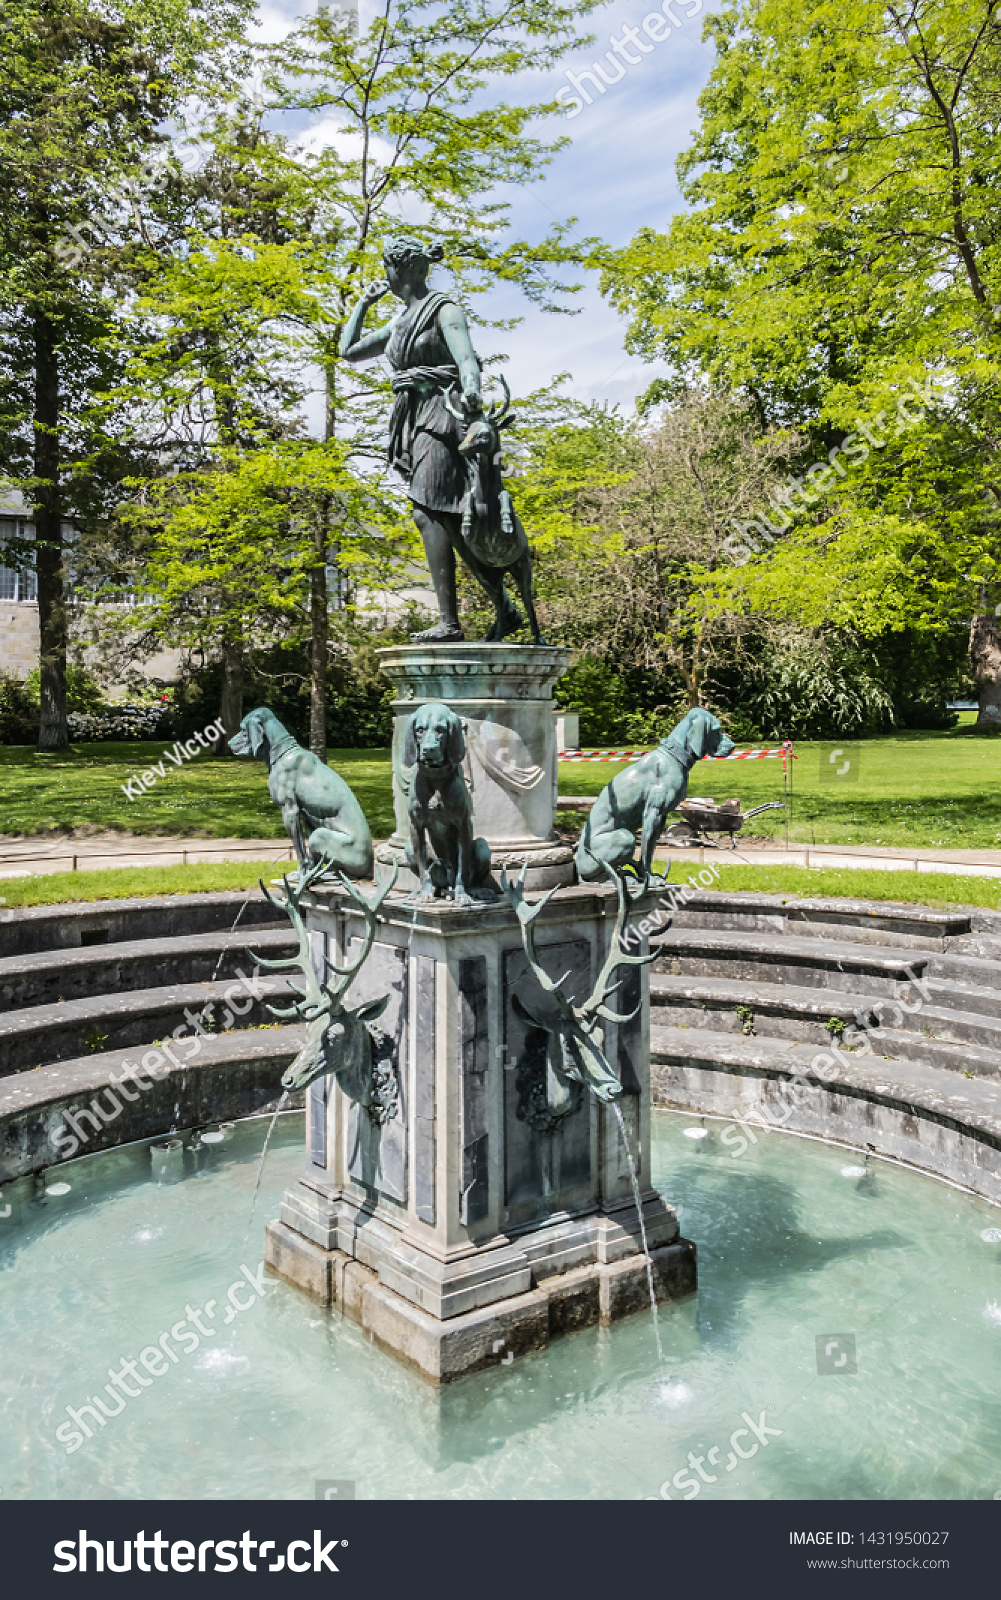 Image De Fontaine De Jardin fontaine de diane dianas fountain 1602 stock photo (edit now